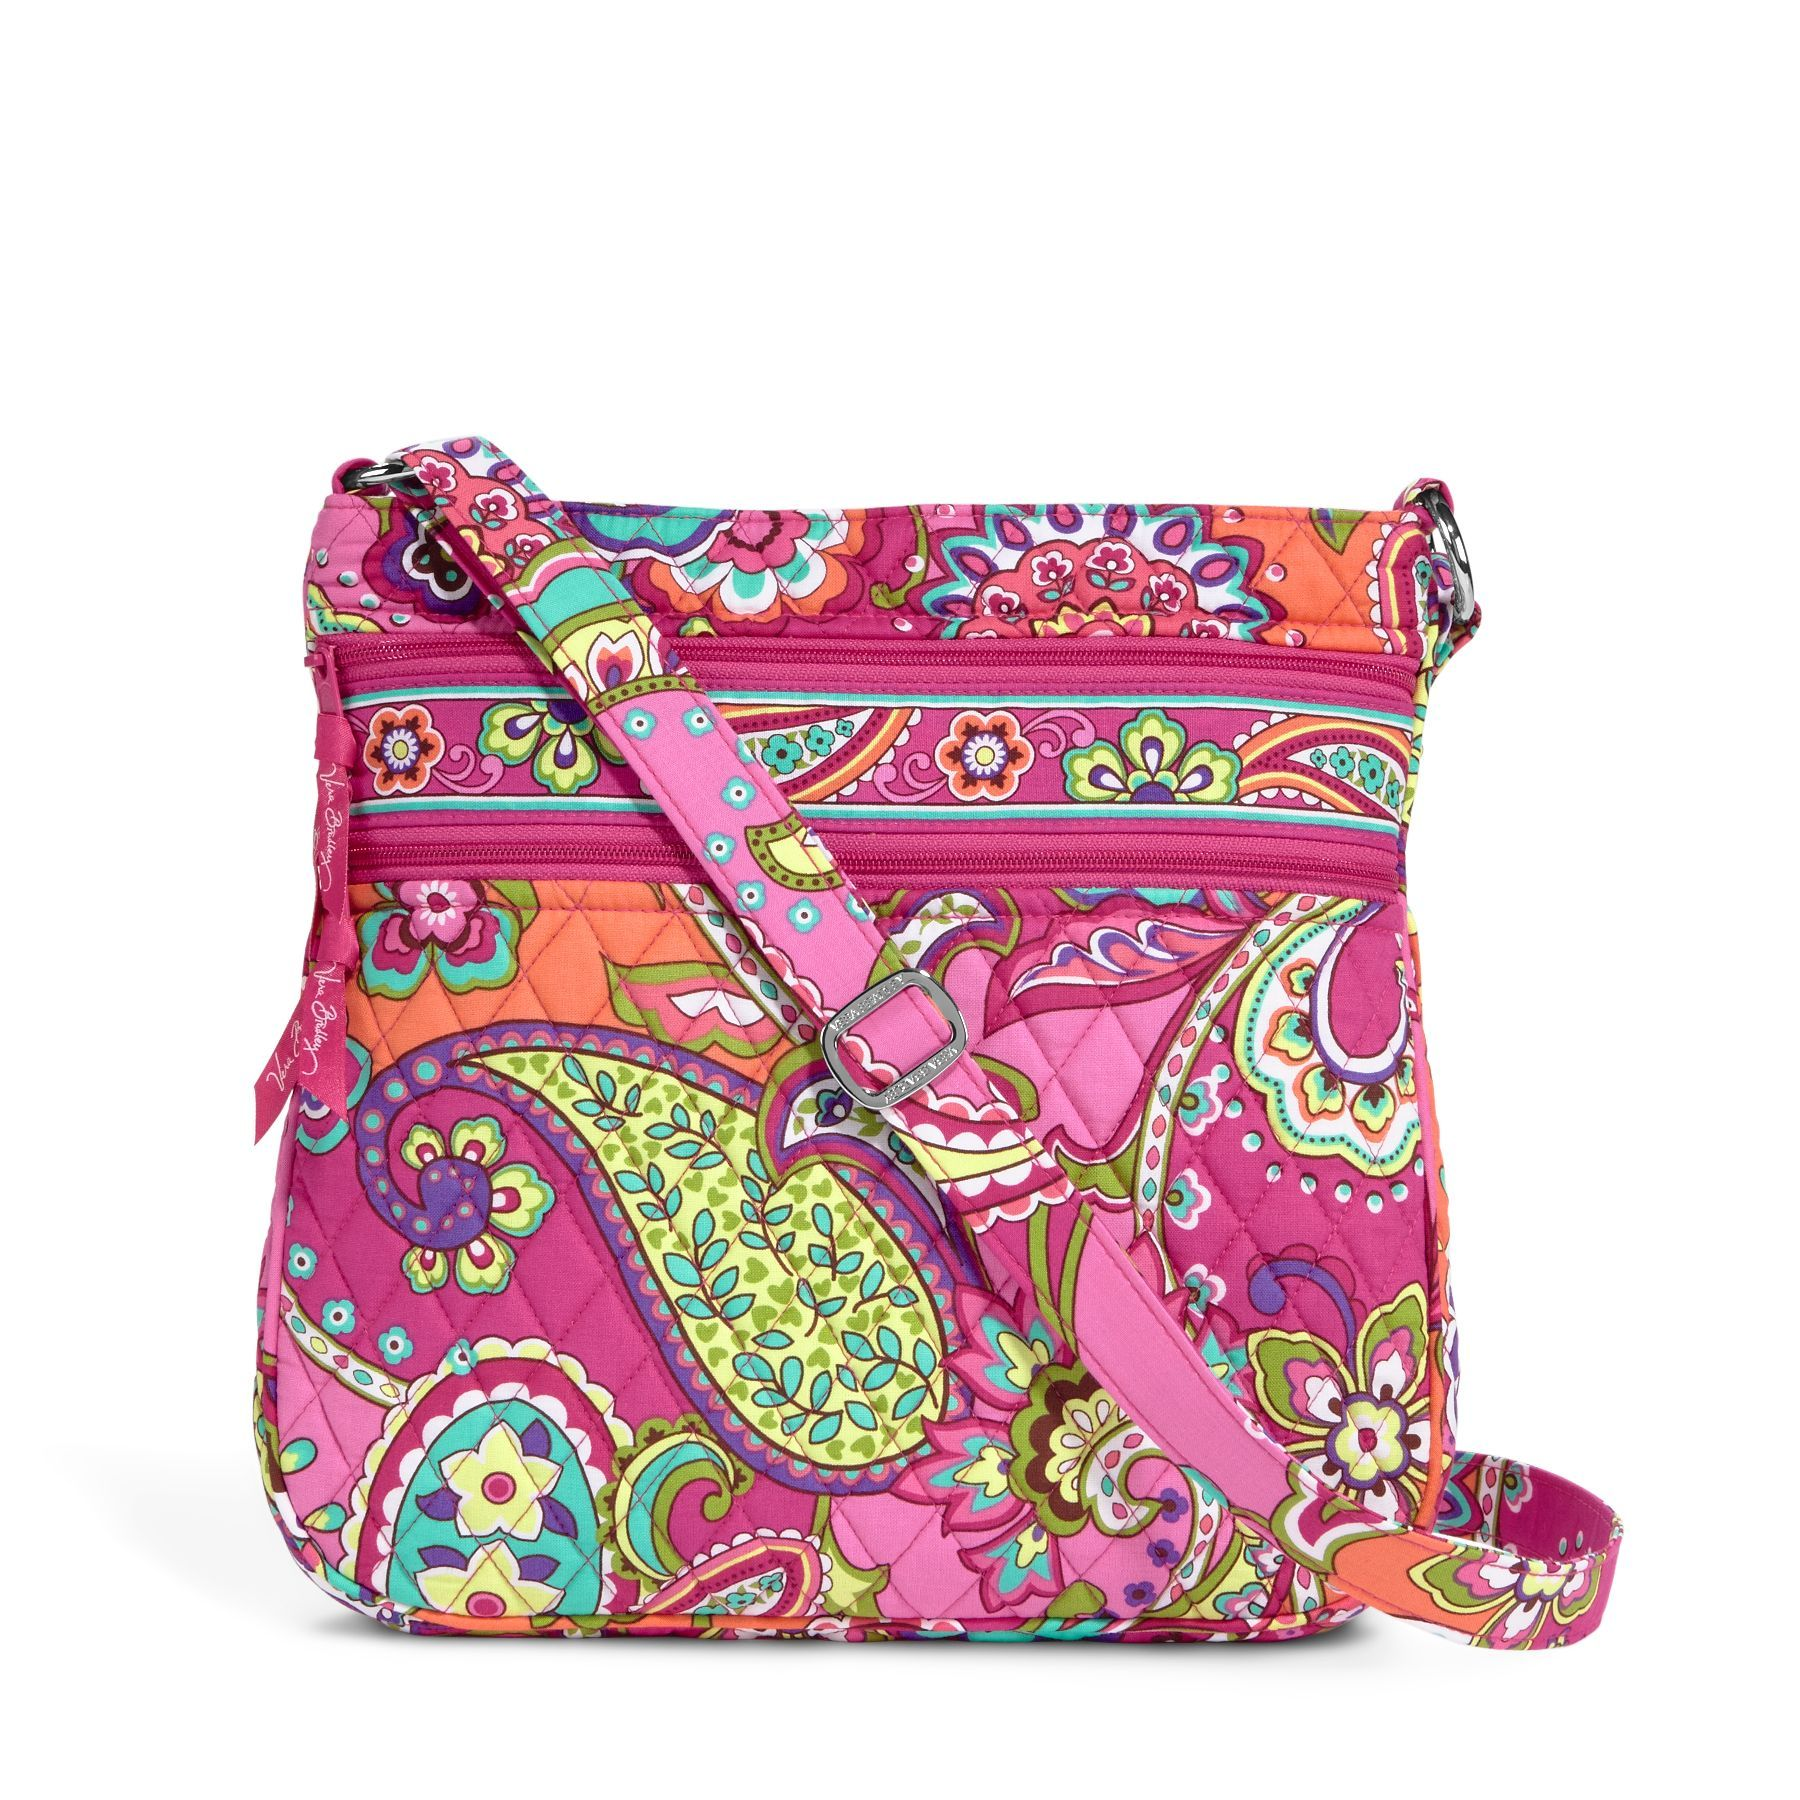 fcbc67cfb Triple Zip Hipster in Pink Swirls, $58 | Vera Bradley | What's New ...